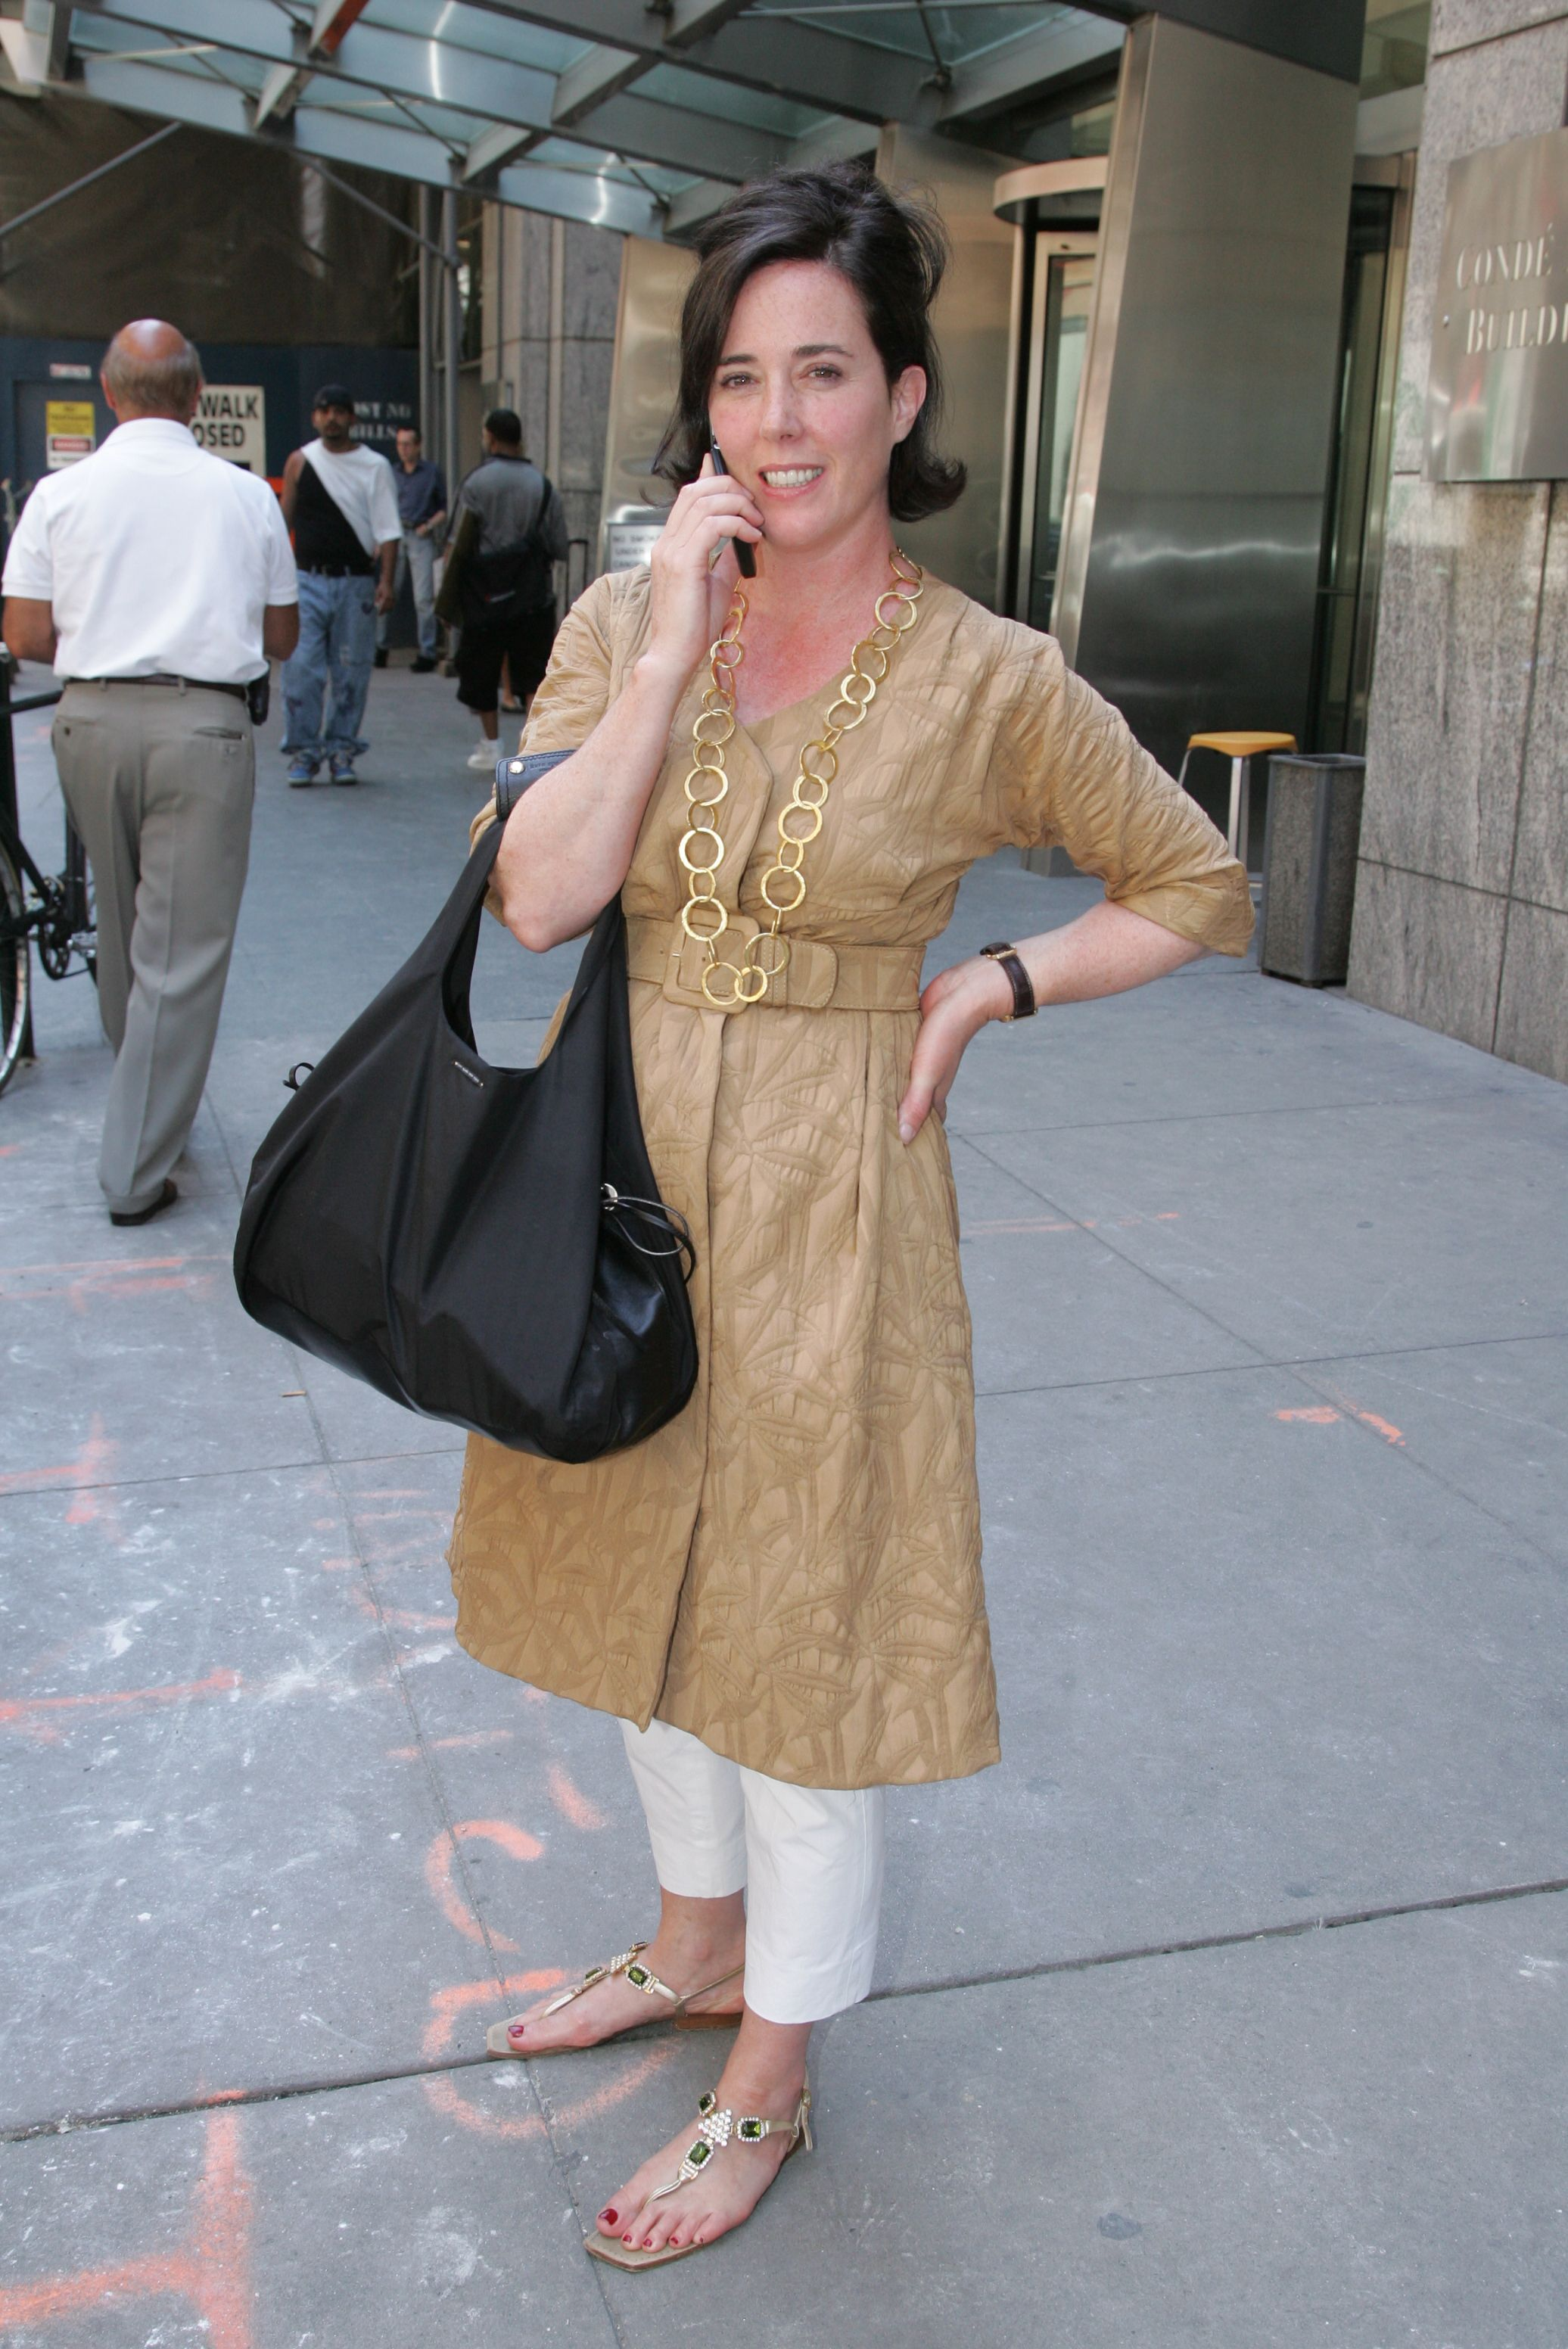 "<div class=""meta image-caption""><div class=""origin-logo origin-image none""><span>none</span></div><span class=""caption-text"">Kate Spade arrives at the Council of Fashion Designers of America's board meeting at 4 Times Square in 2006 (Zack Seckler/Penske Media/REX/Shutterstock)</span></div>"